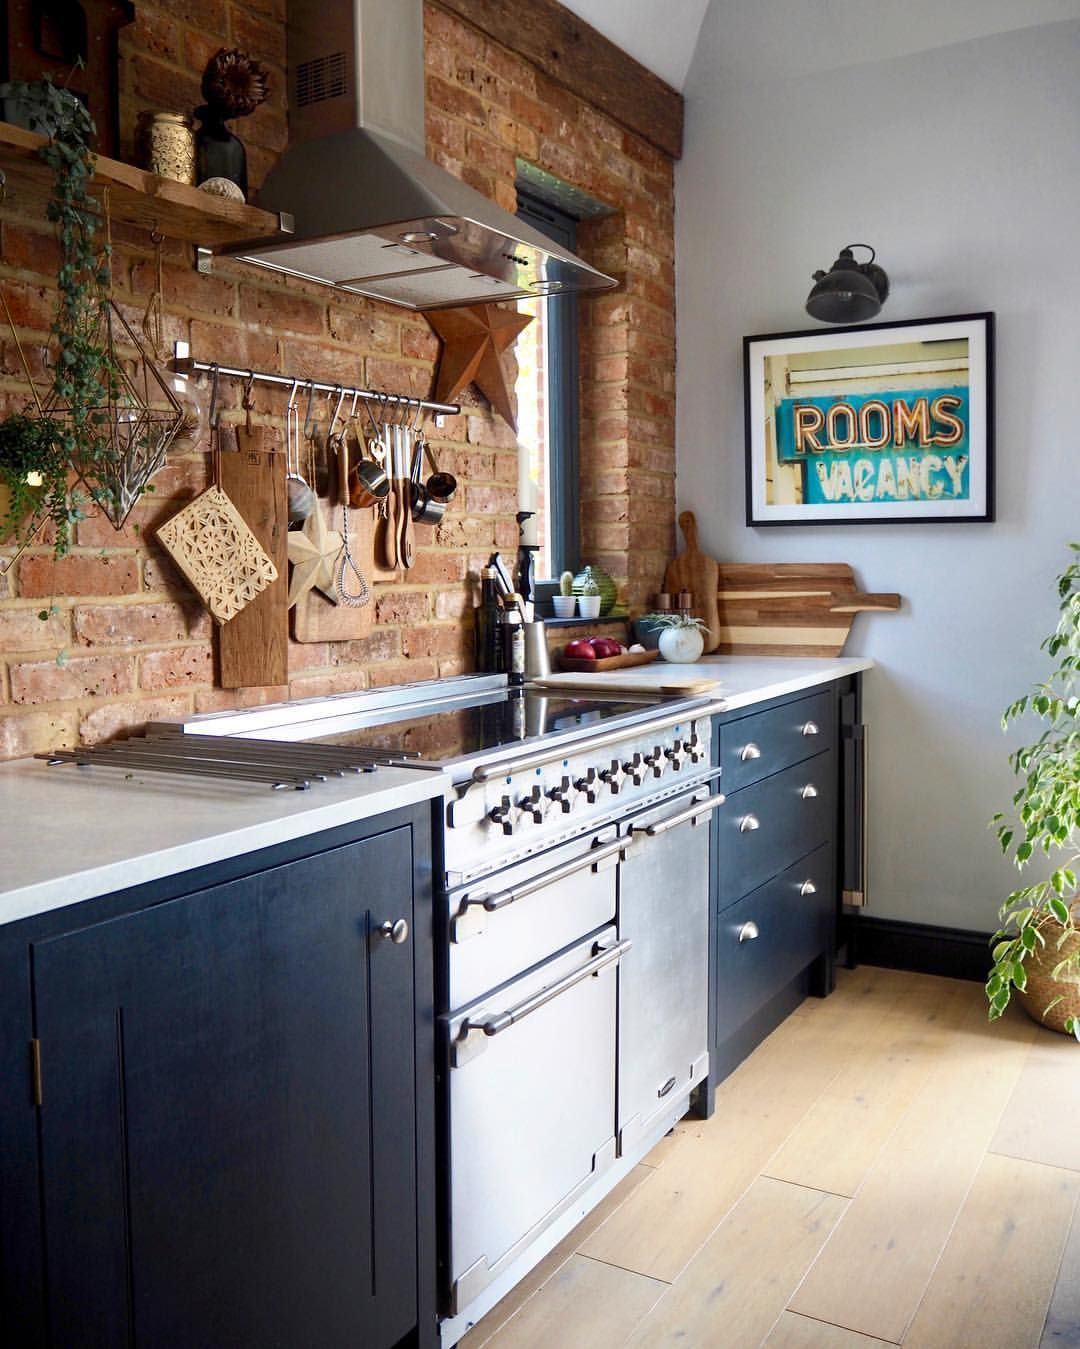 Exposed Brick Blue Kitchen Modern Rustic Kitchen Hornsby Style Rustic Modern Kitchen Kitchen Design Brick Wall Kitchen